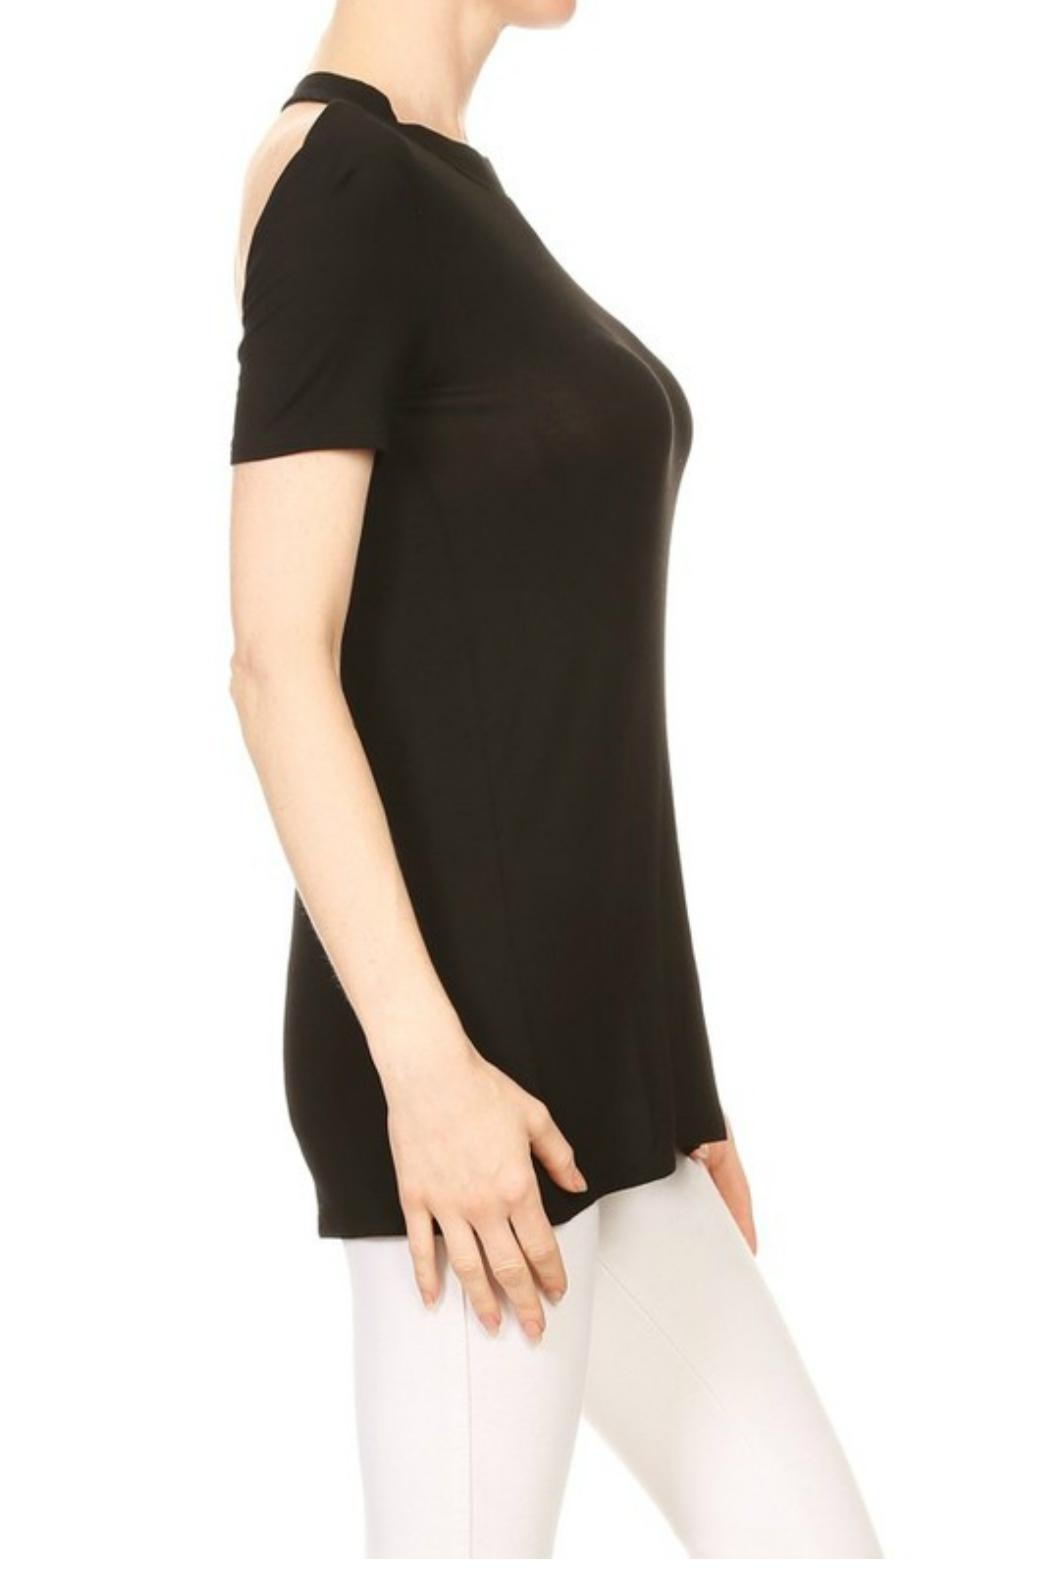 Minx Black Strapped Blouse - Side Cropped Image